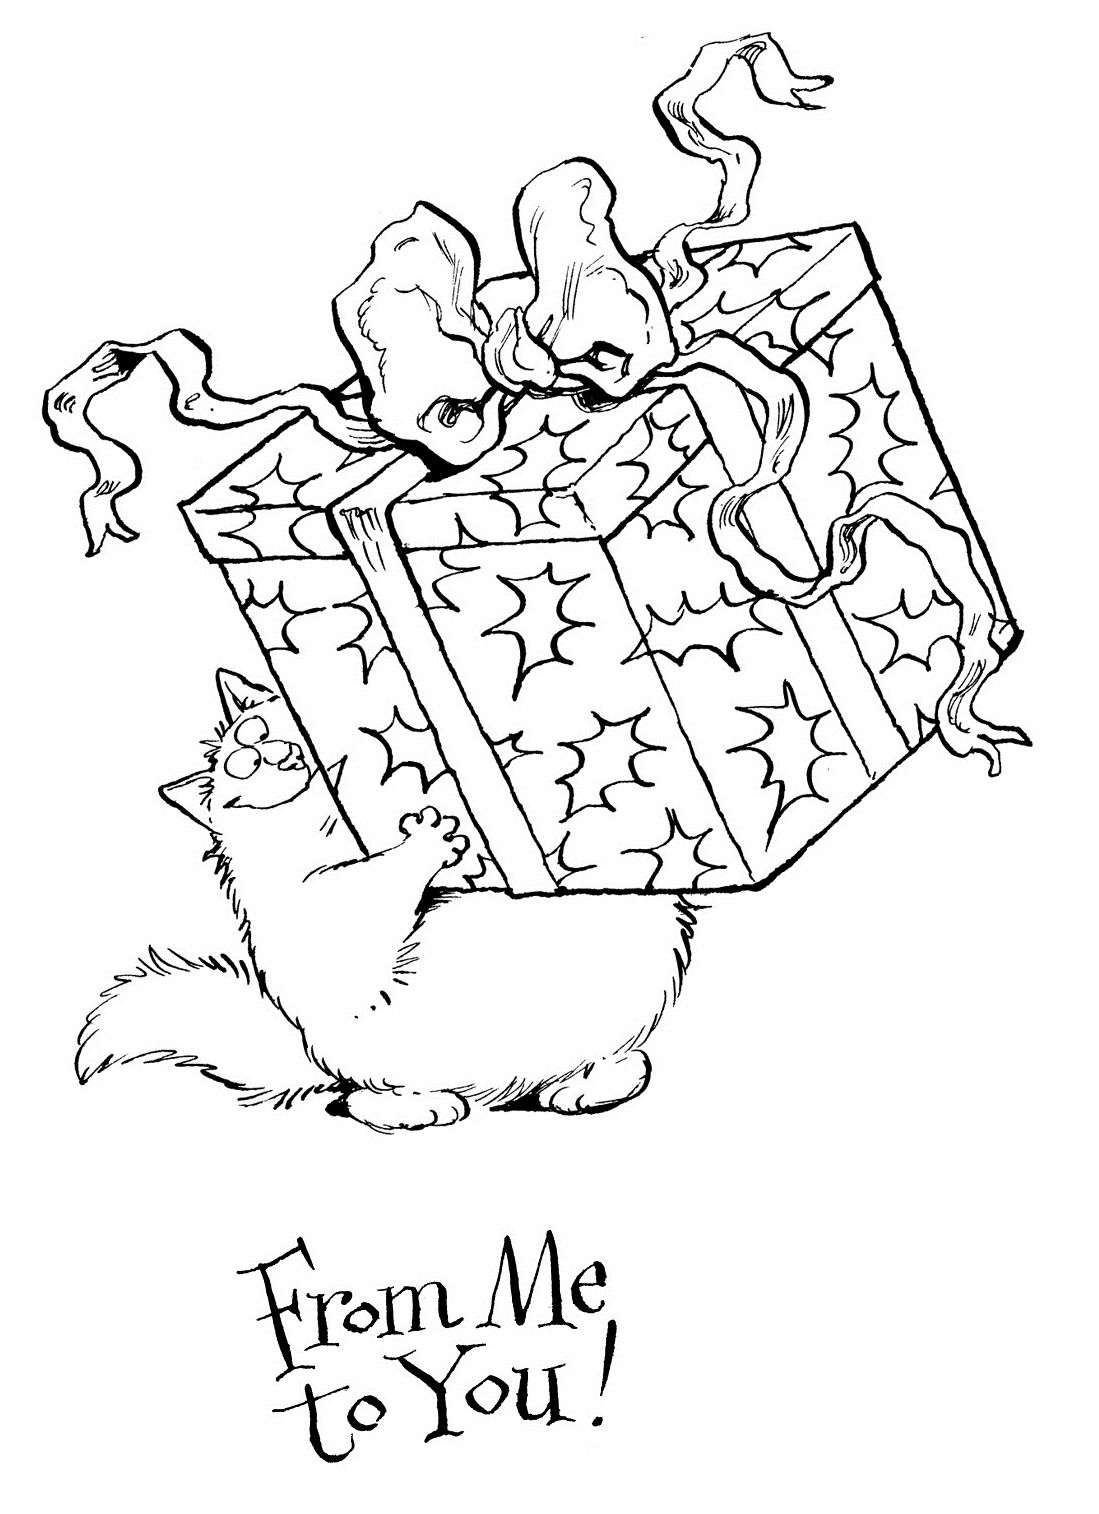 The Secret Life of Pets Coloring Pages Fat Cat - Get Coloring Pages | 1514x1099